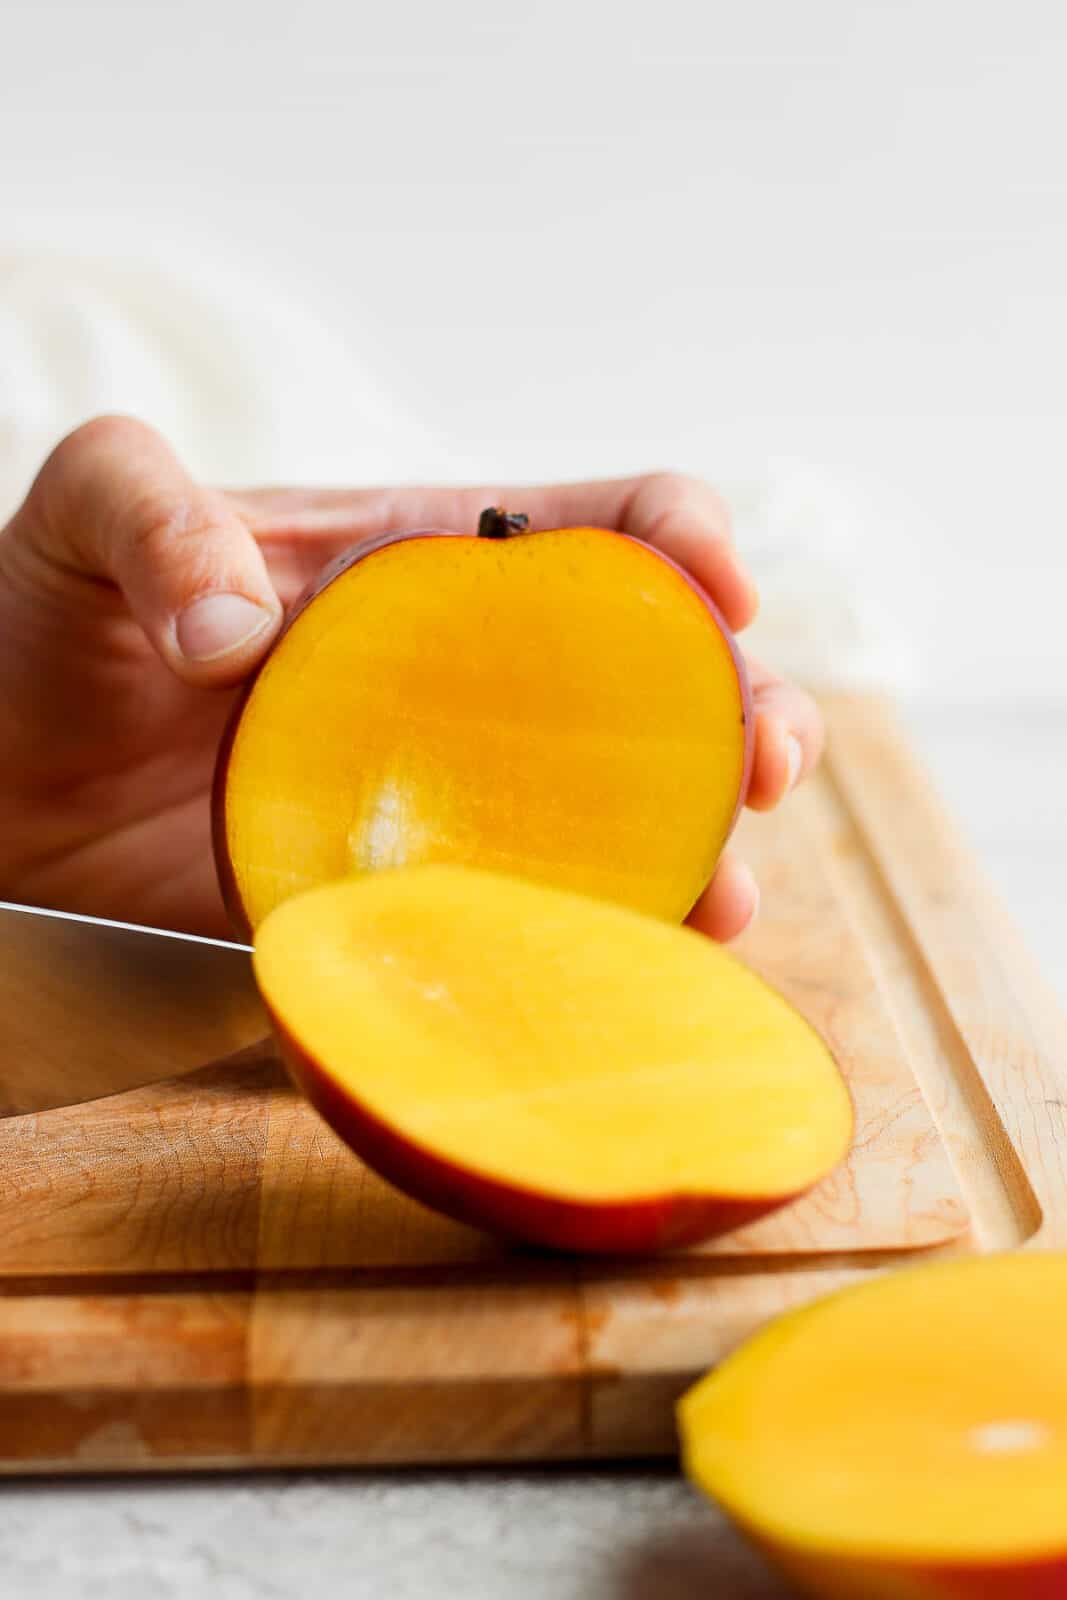 A mango with the front half sliced off.